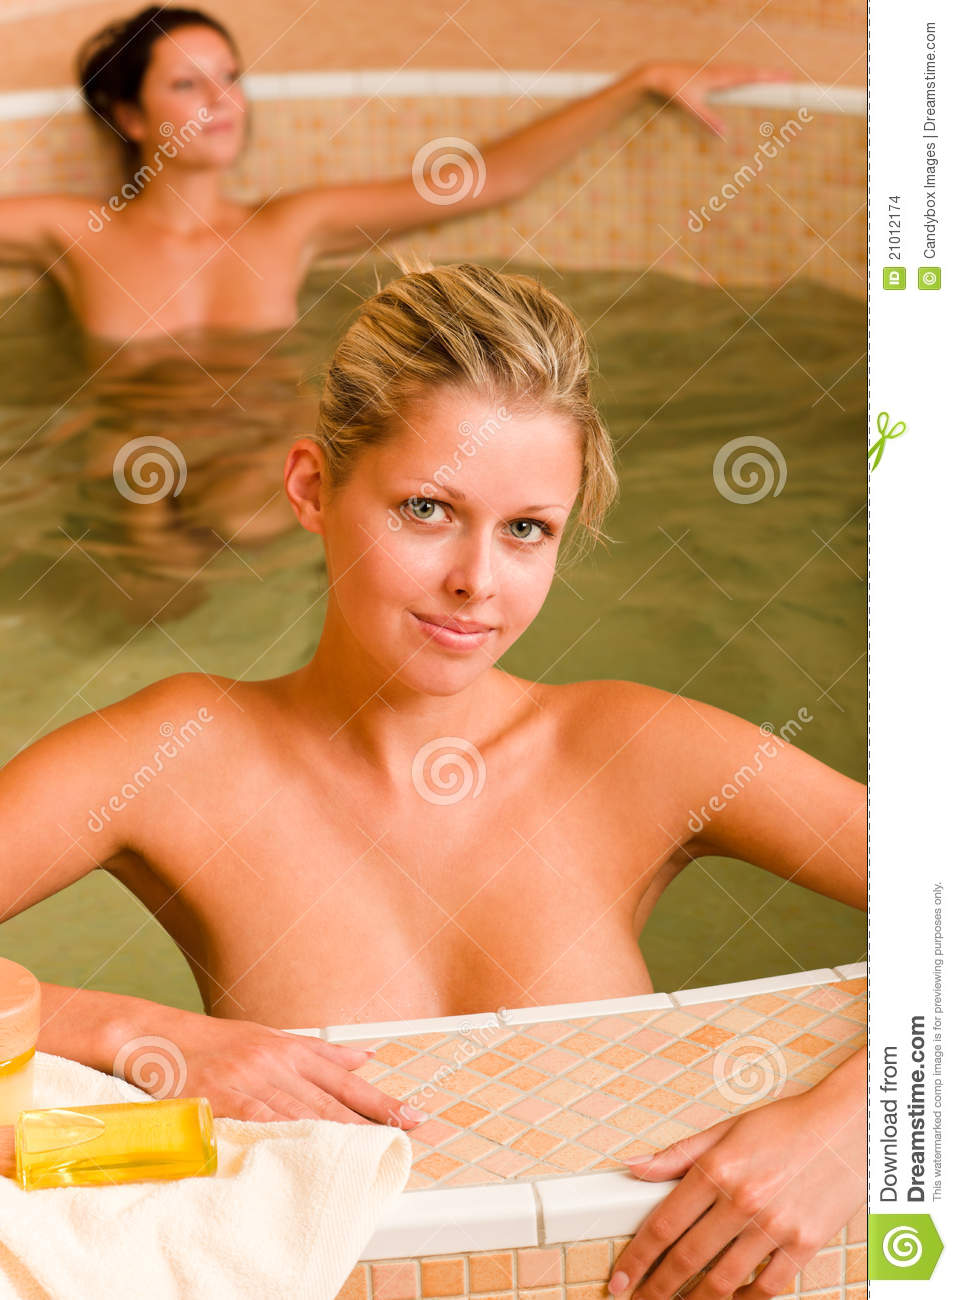 Spa Beauty Relax Pool Two Naked Women Stock Photo - Image -7635